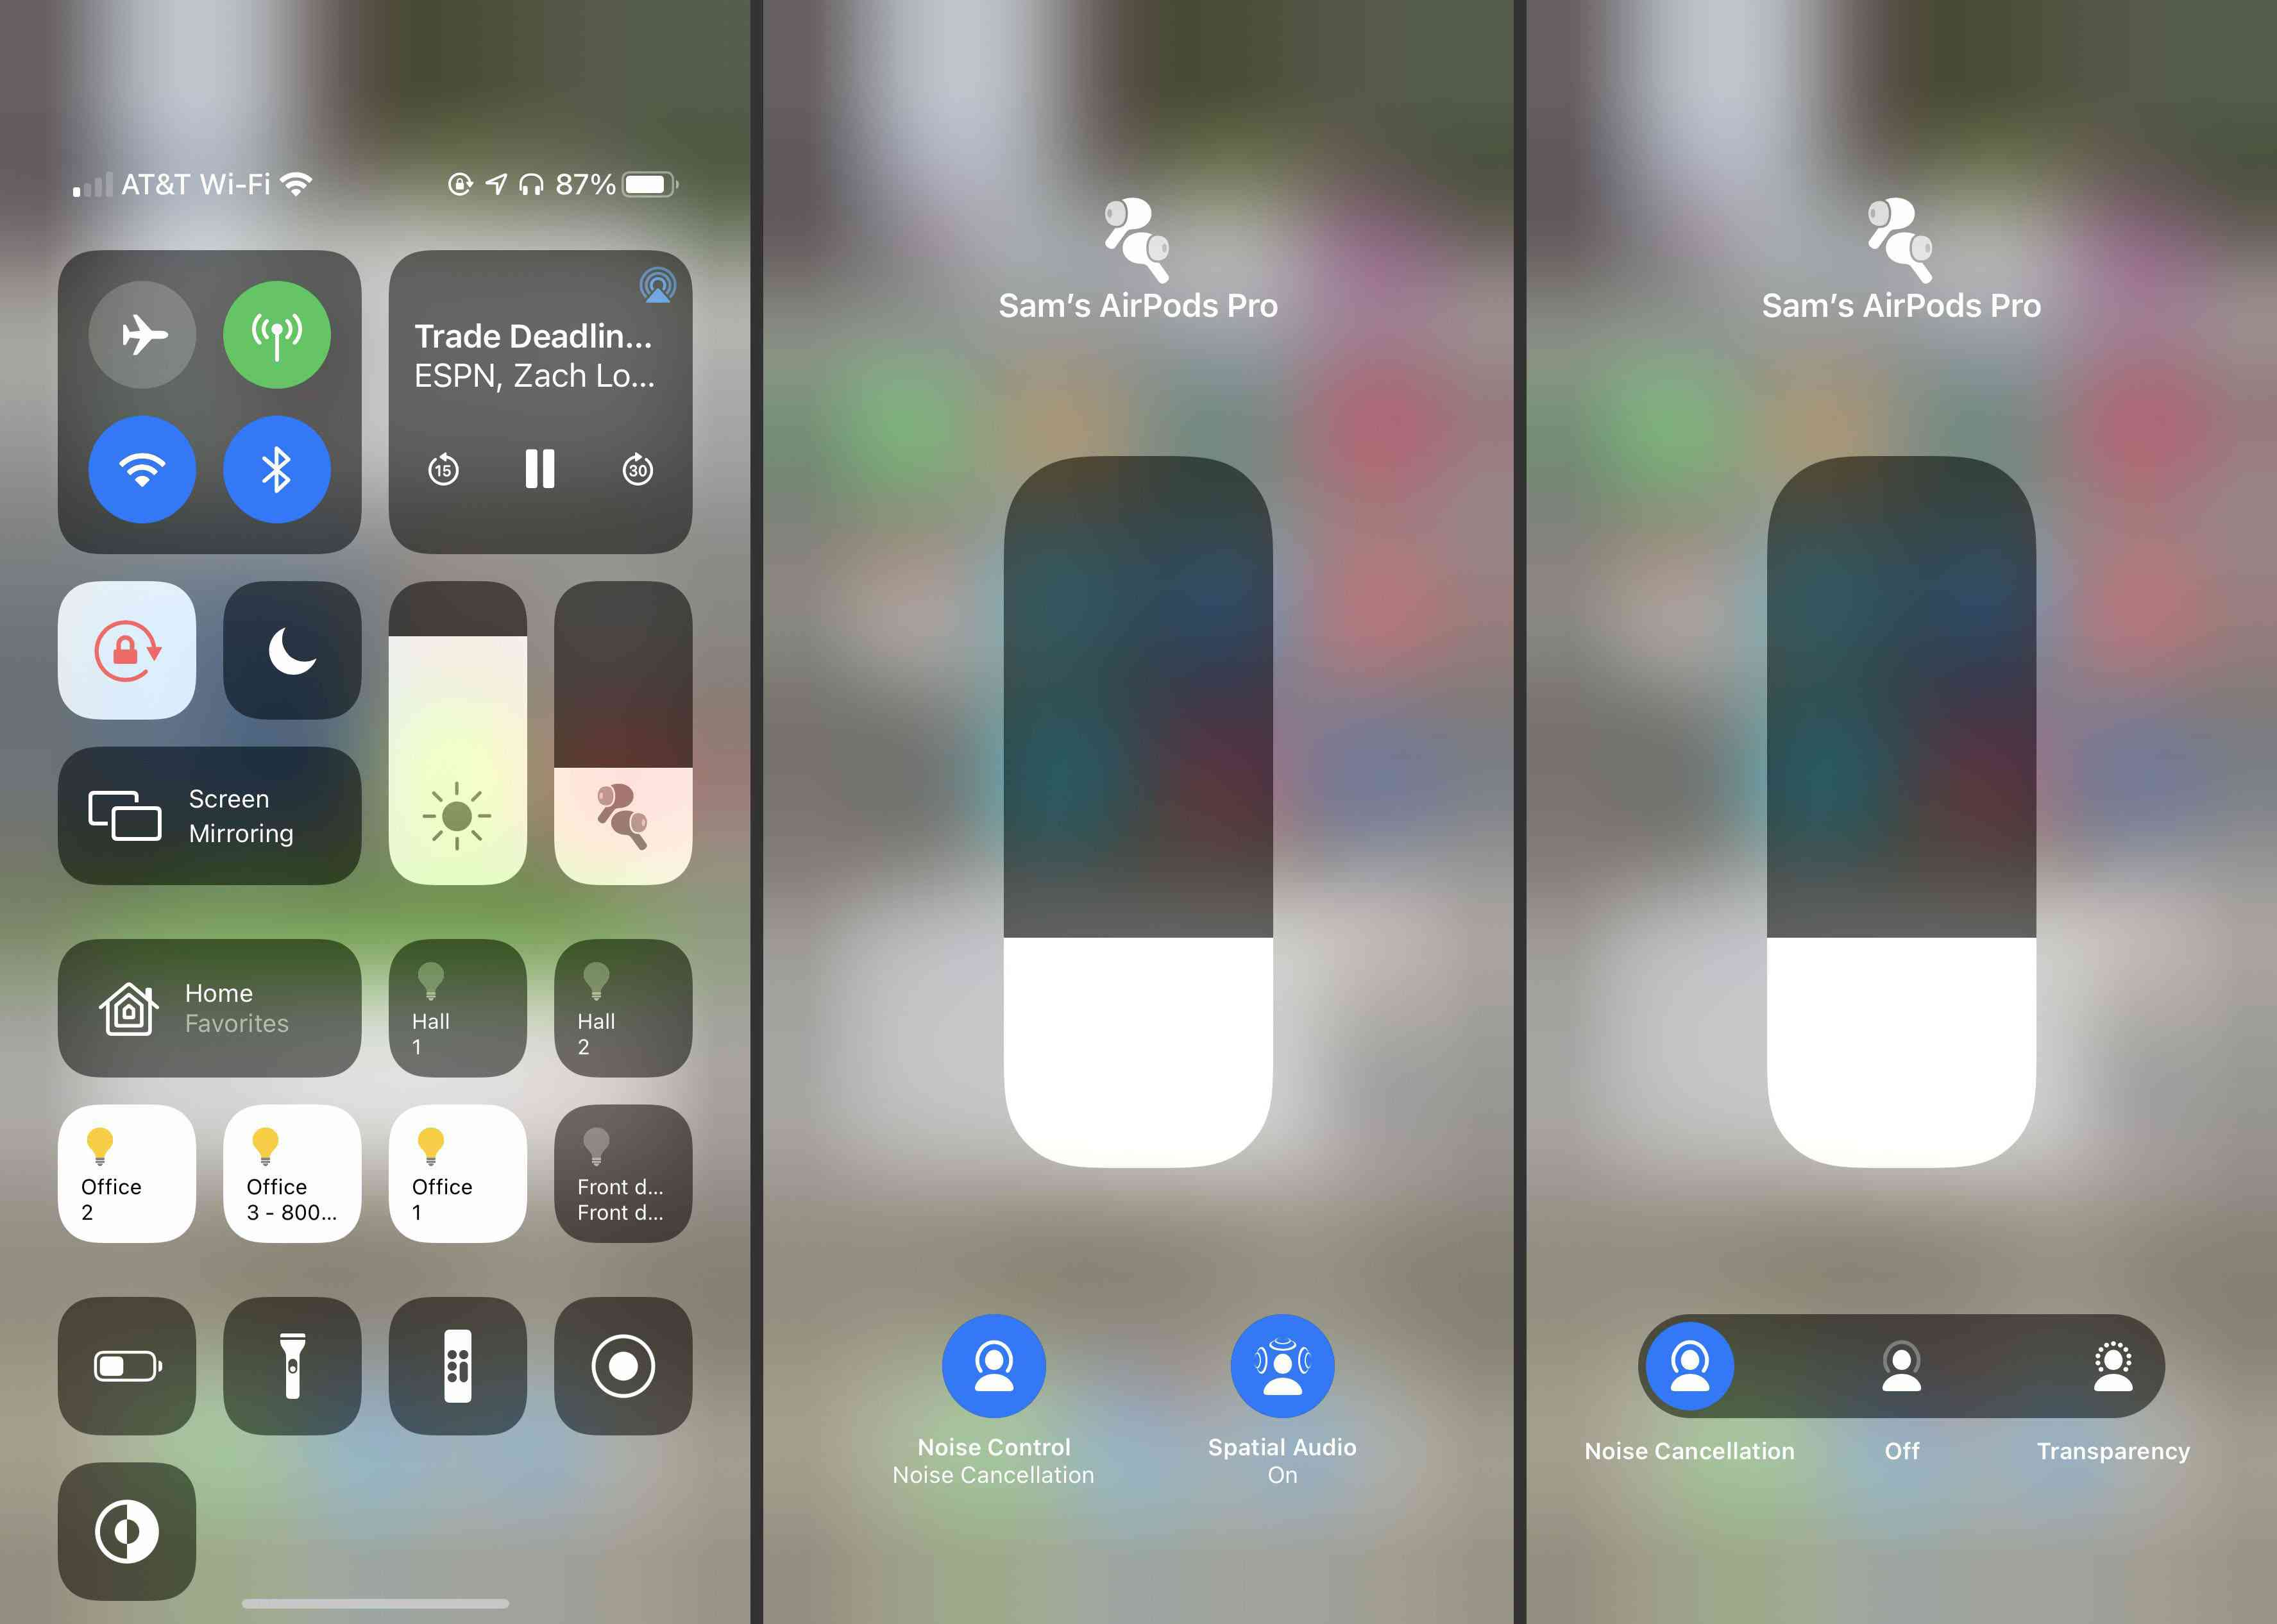 Steps to take to turn on AirPods Pro noise cancellation via iOS Control Center.